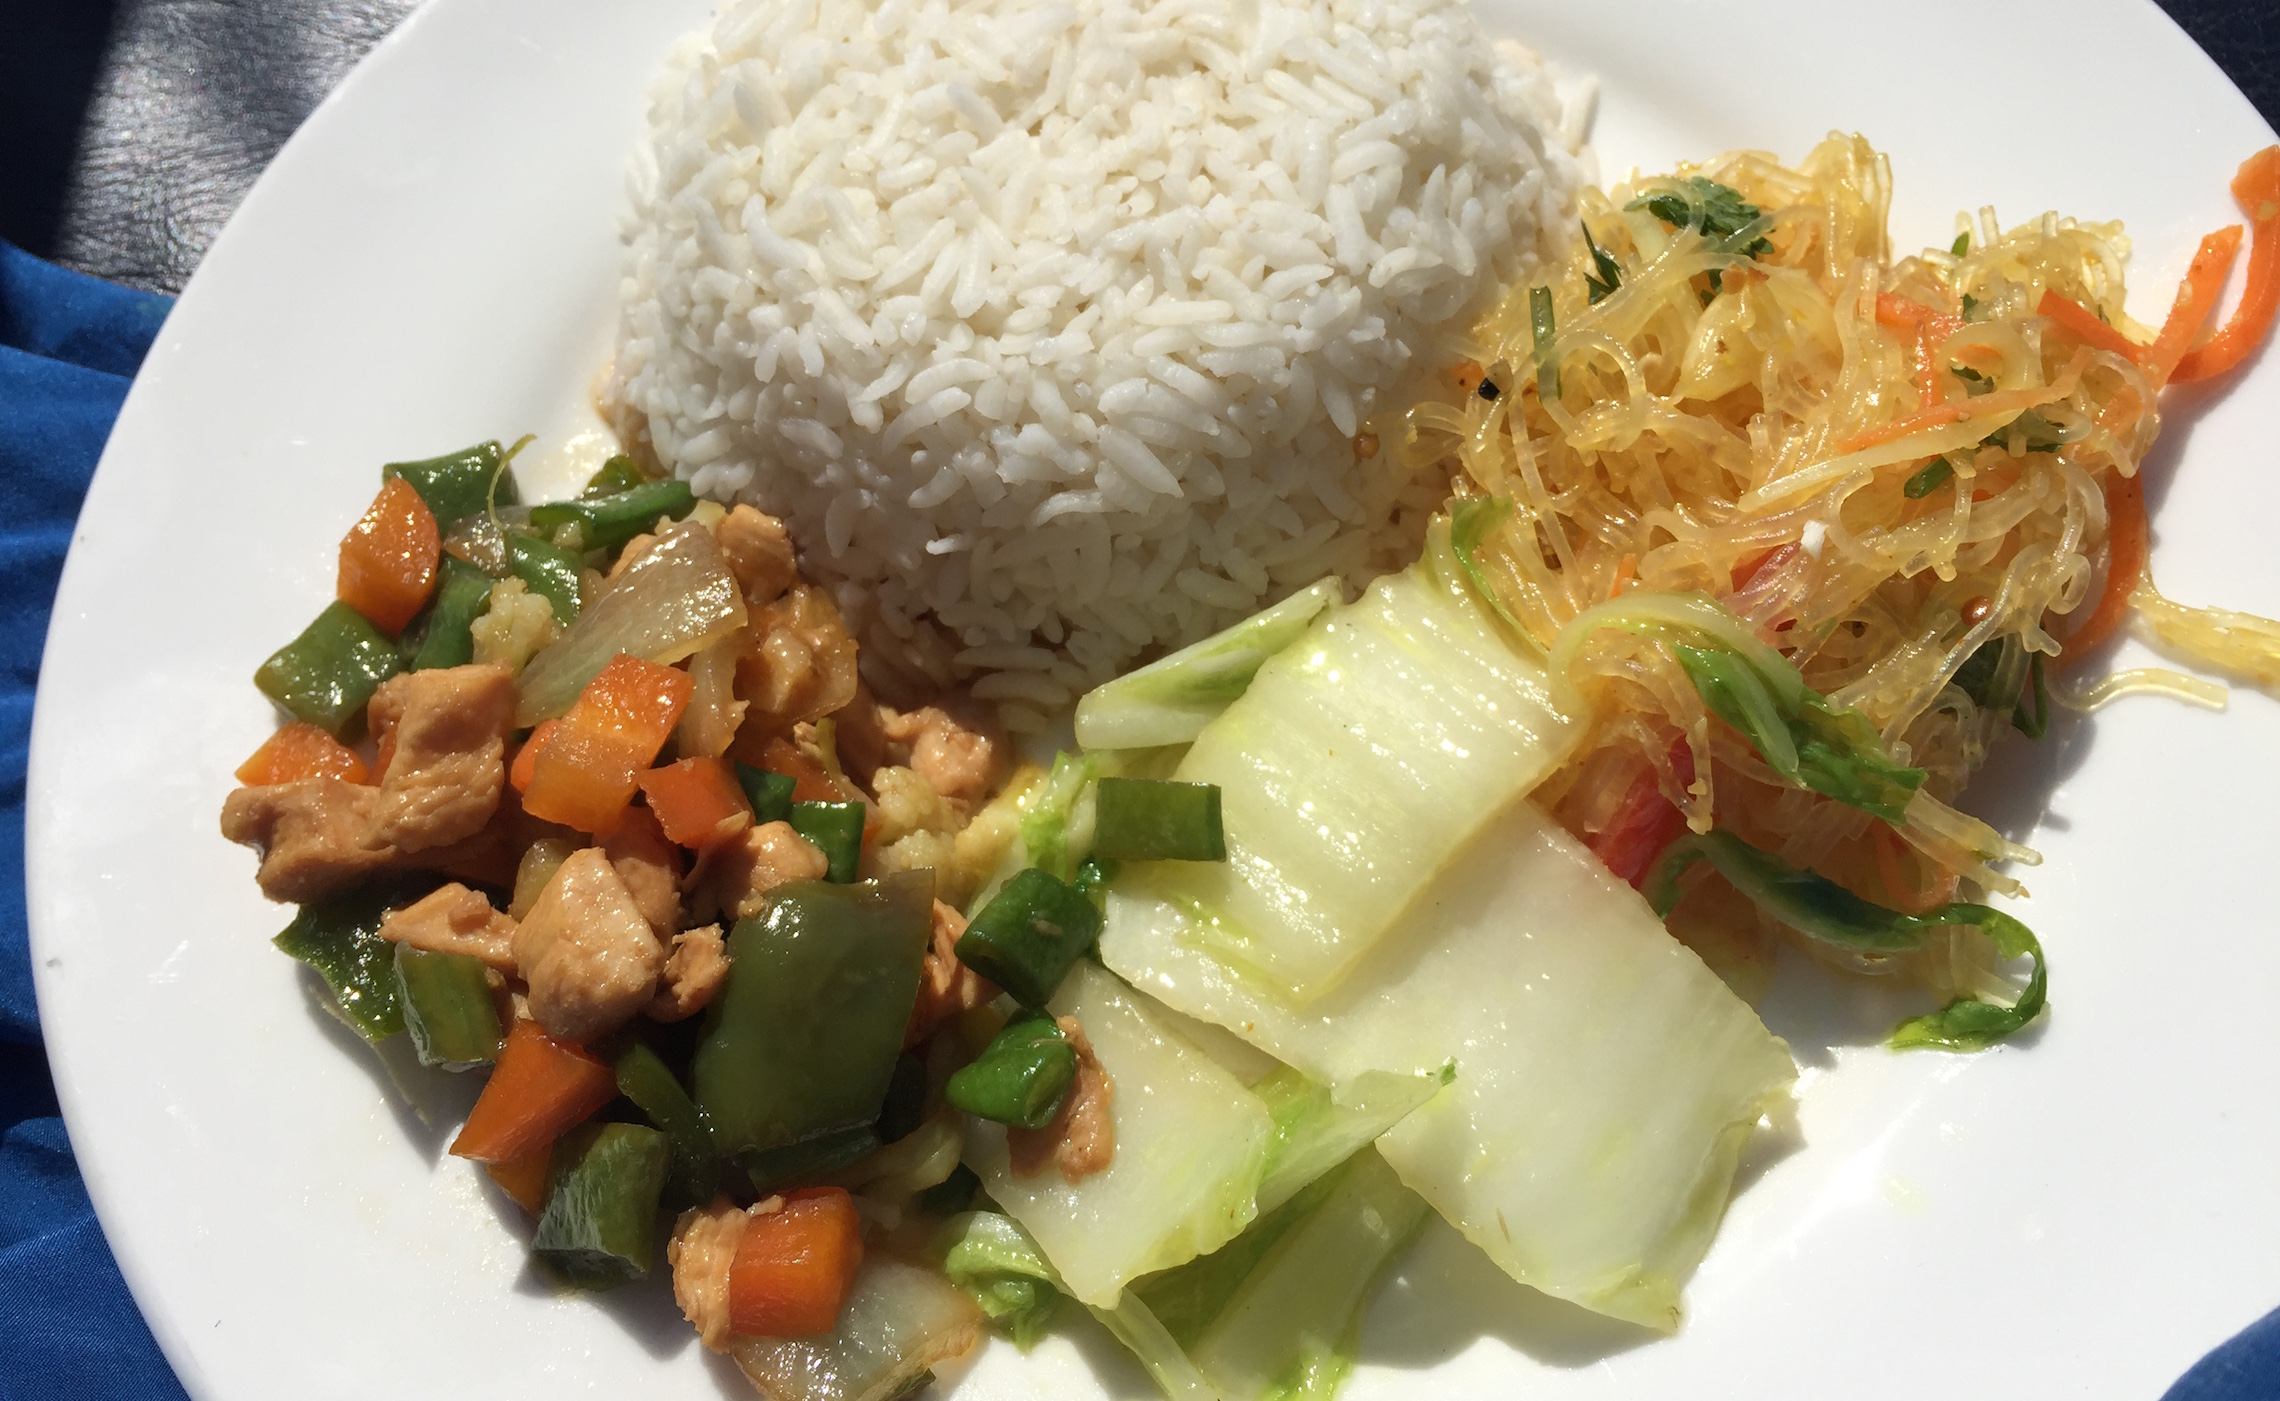 Burmese Cuisine: Chicken, Rice, and Vermacilli